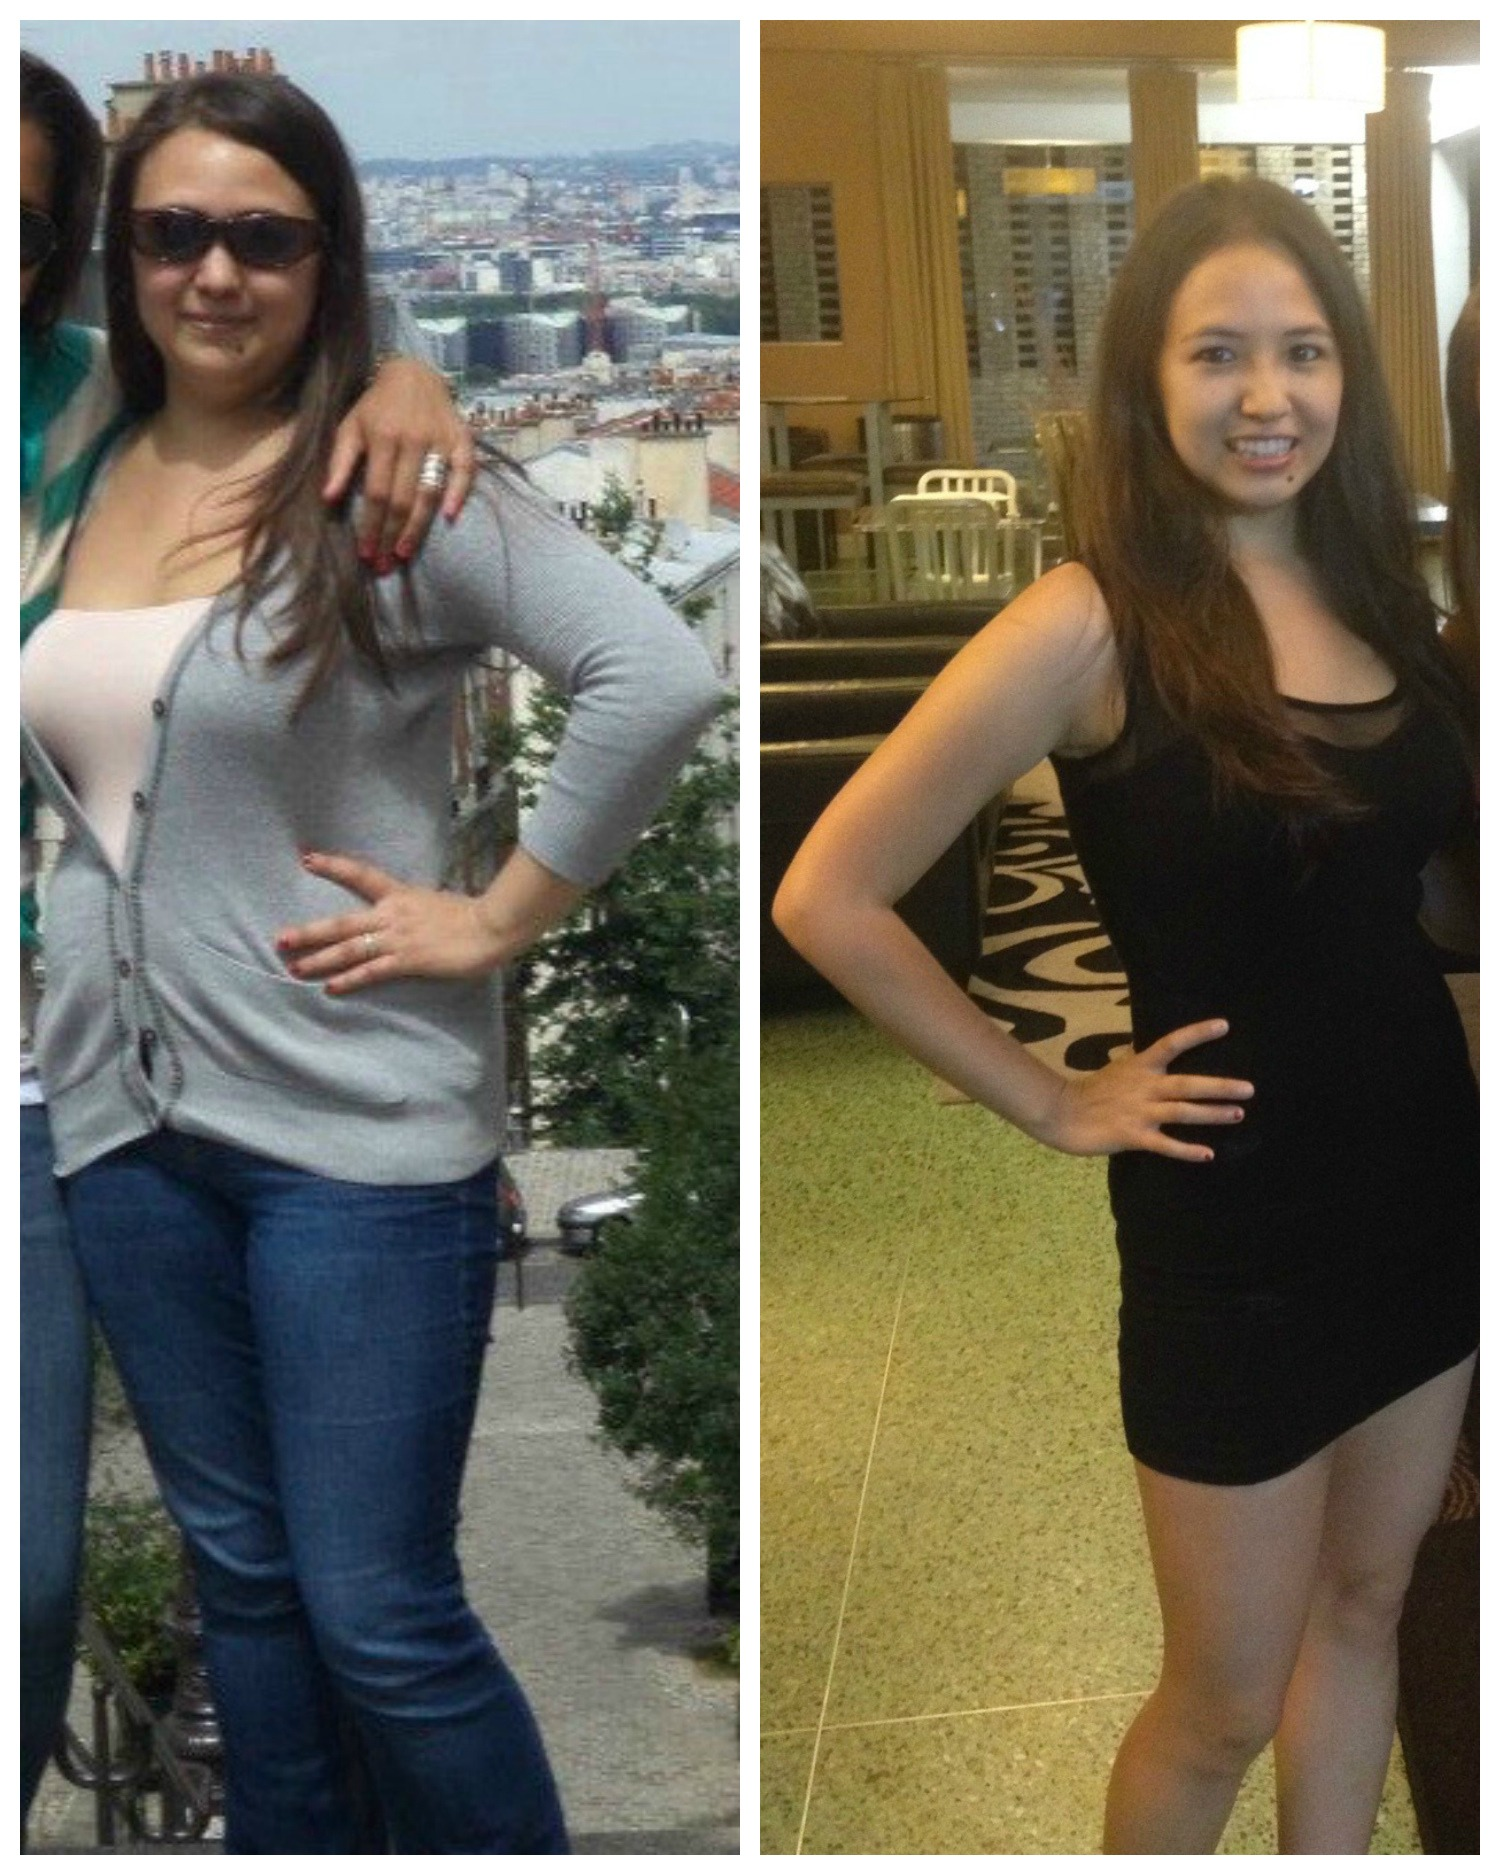 Alyssa lost over 30 pounds with meditation for weight loss